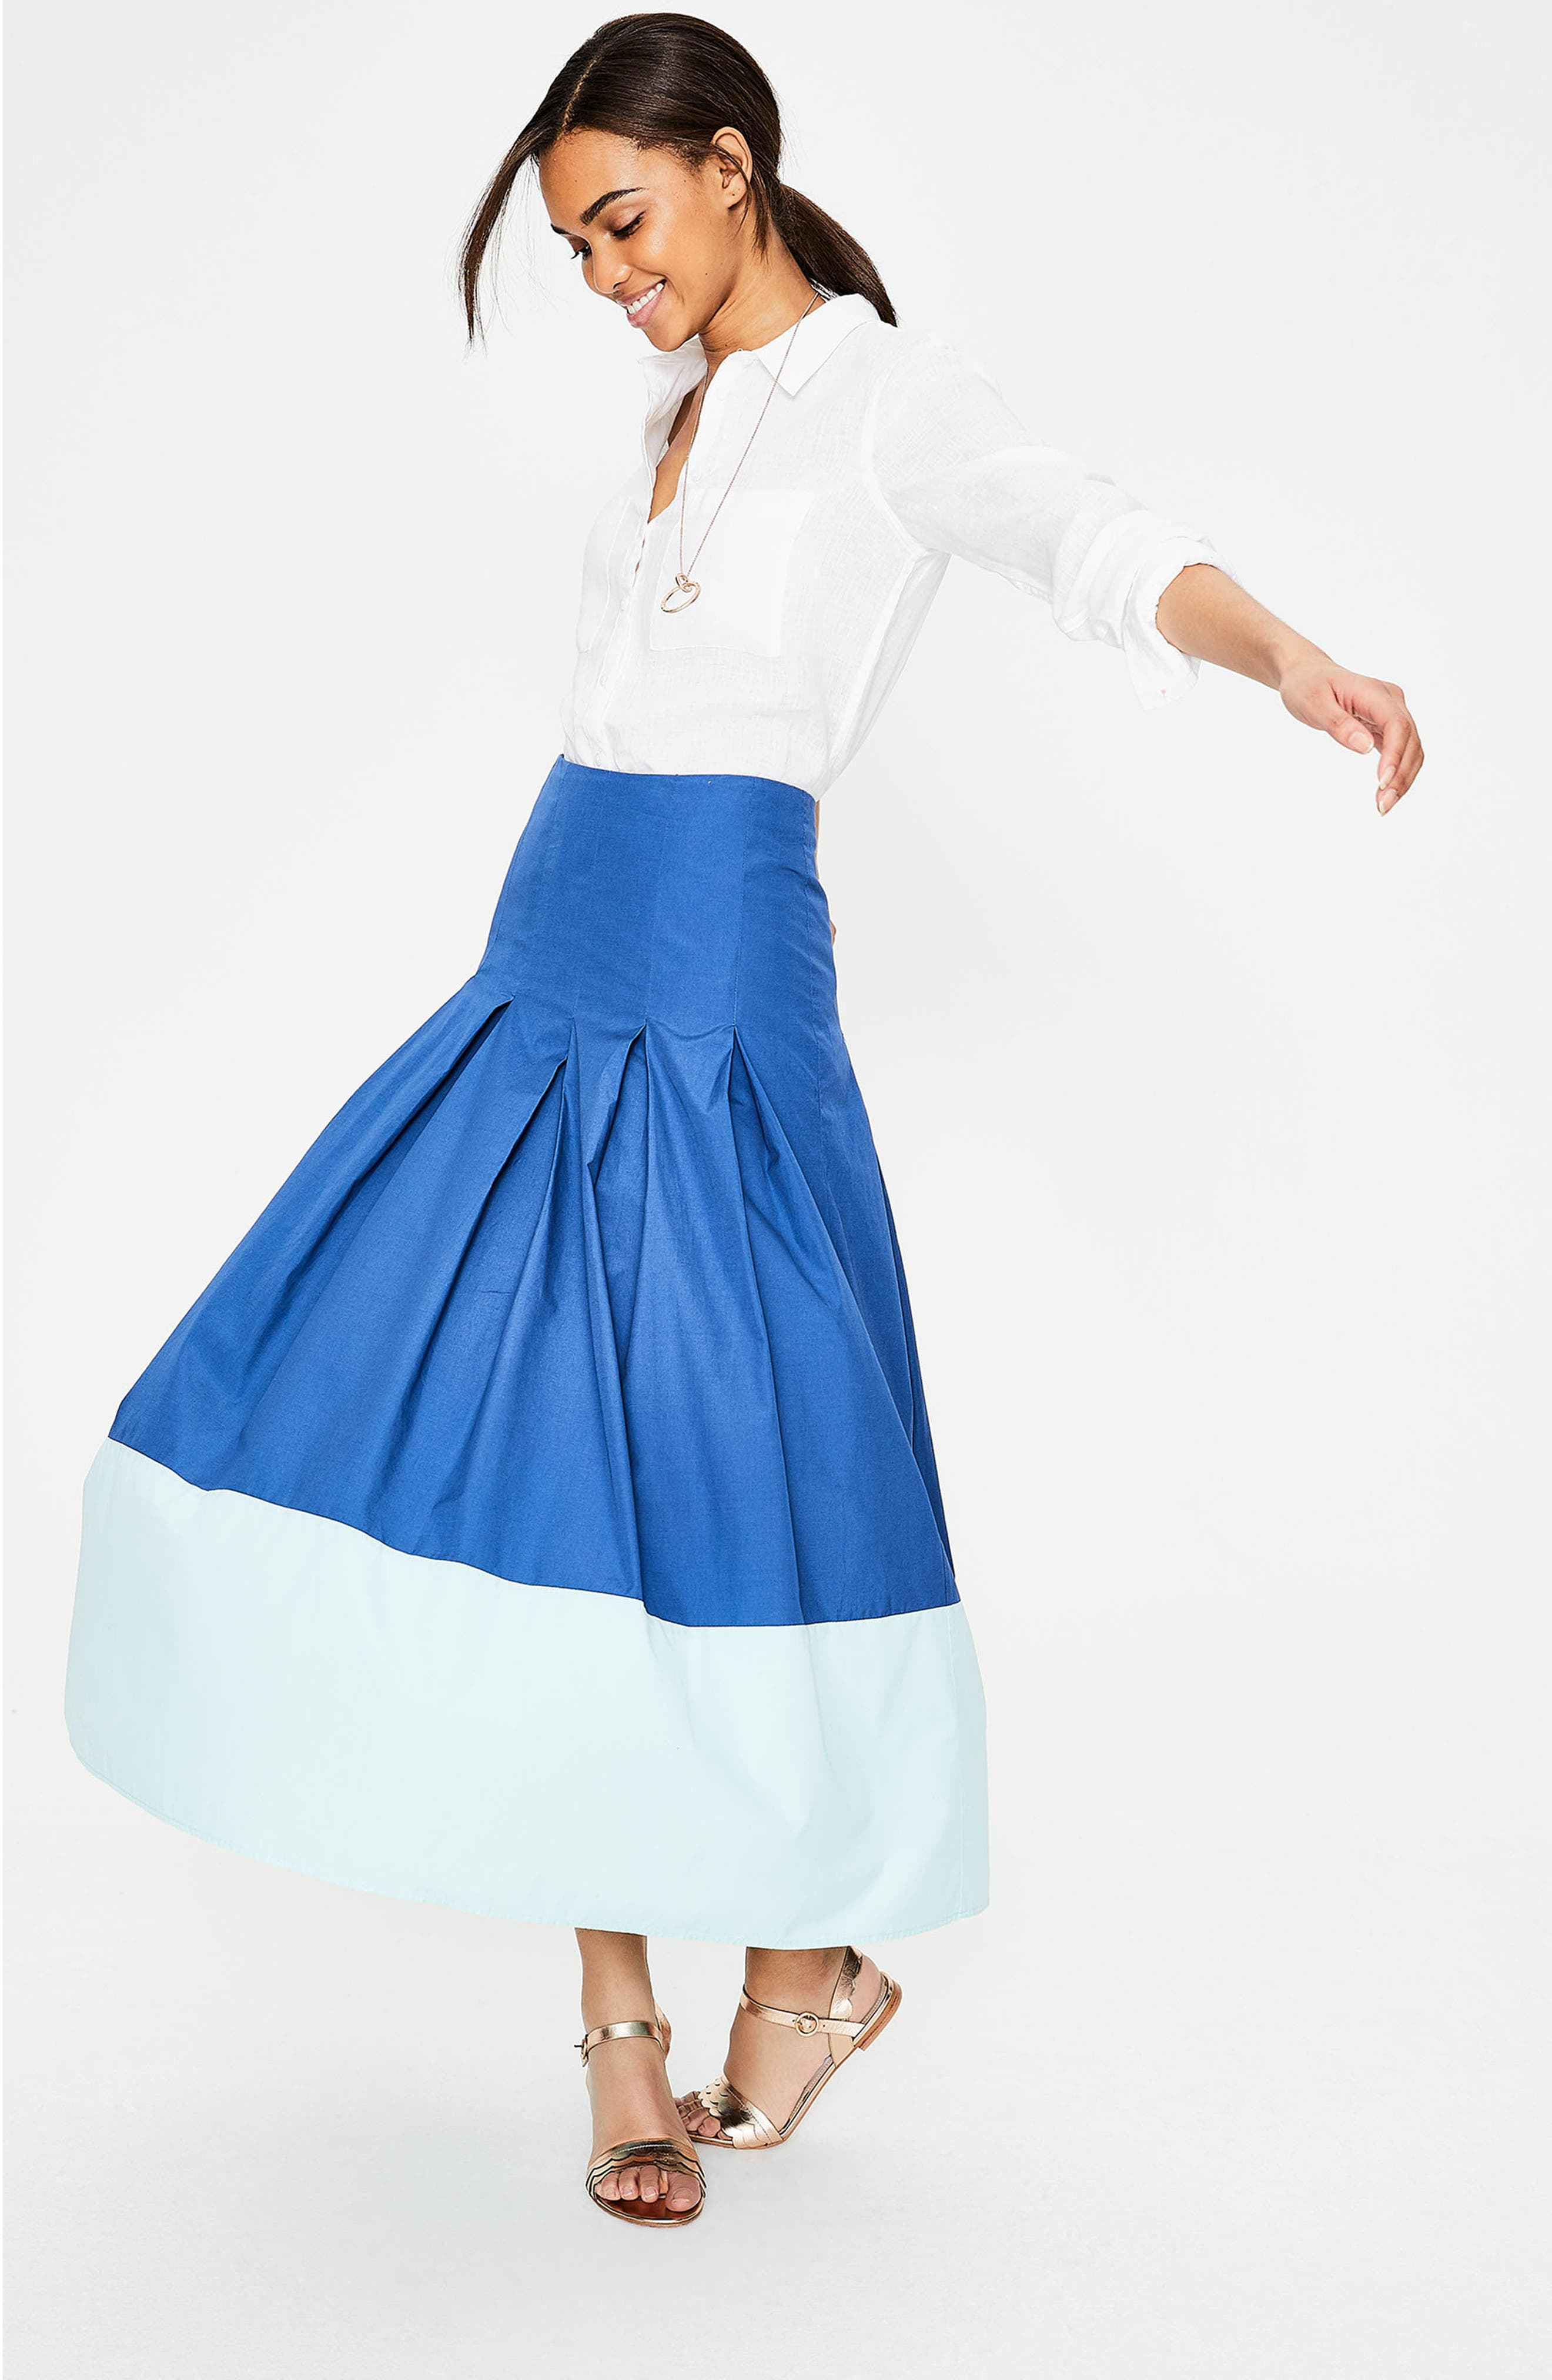 Beatrice Flare Midi Skirt,                             Alternate thumbnail 5, color,                             Riviera Blue W Rippl